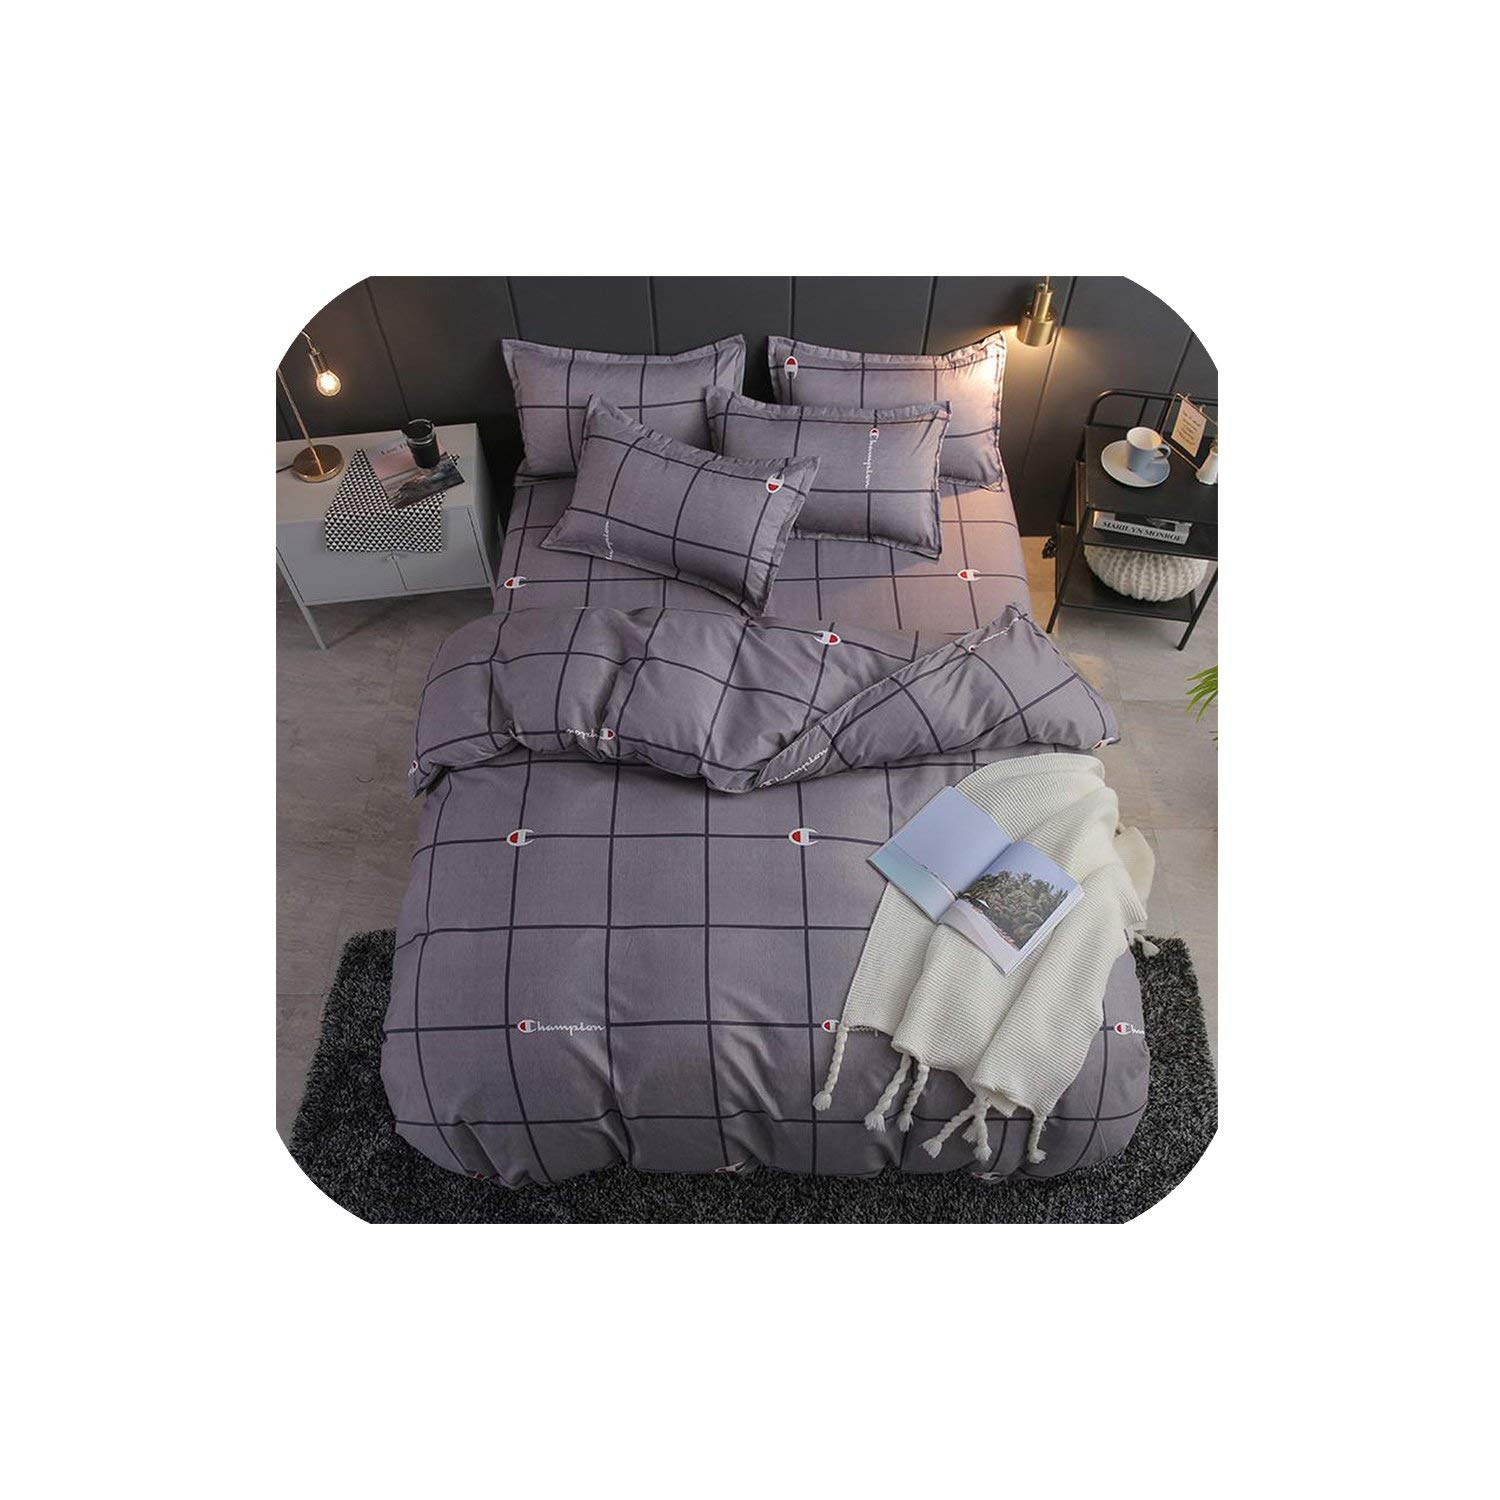 LOVE-JING Green Lemon Winter Bedding Sets Full King Twin Queen King Size 4Pcs Bed Sheet Duvet Cover Set Pillowcase Without Comforter,B19,Full Cover 150By200,Flat Bed Sheet